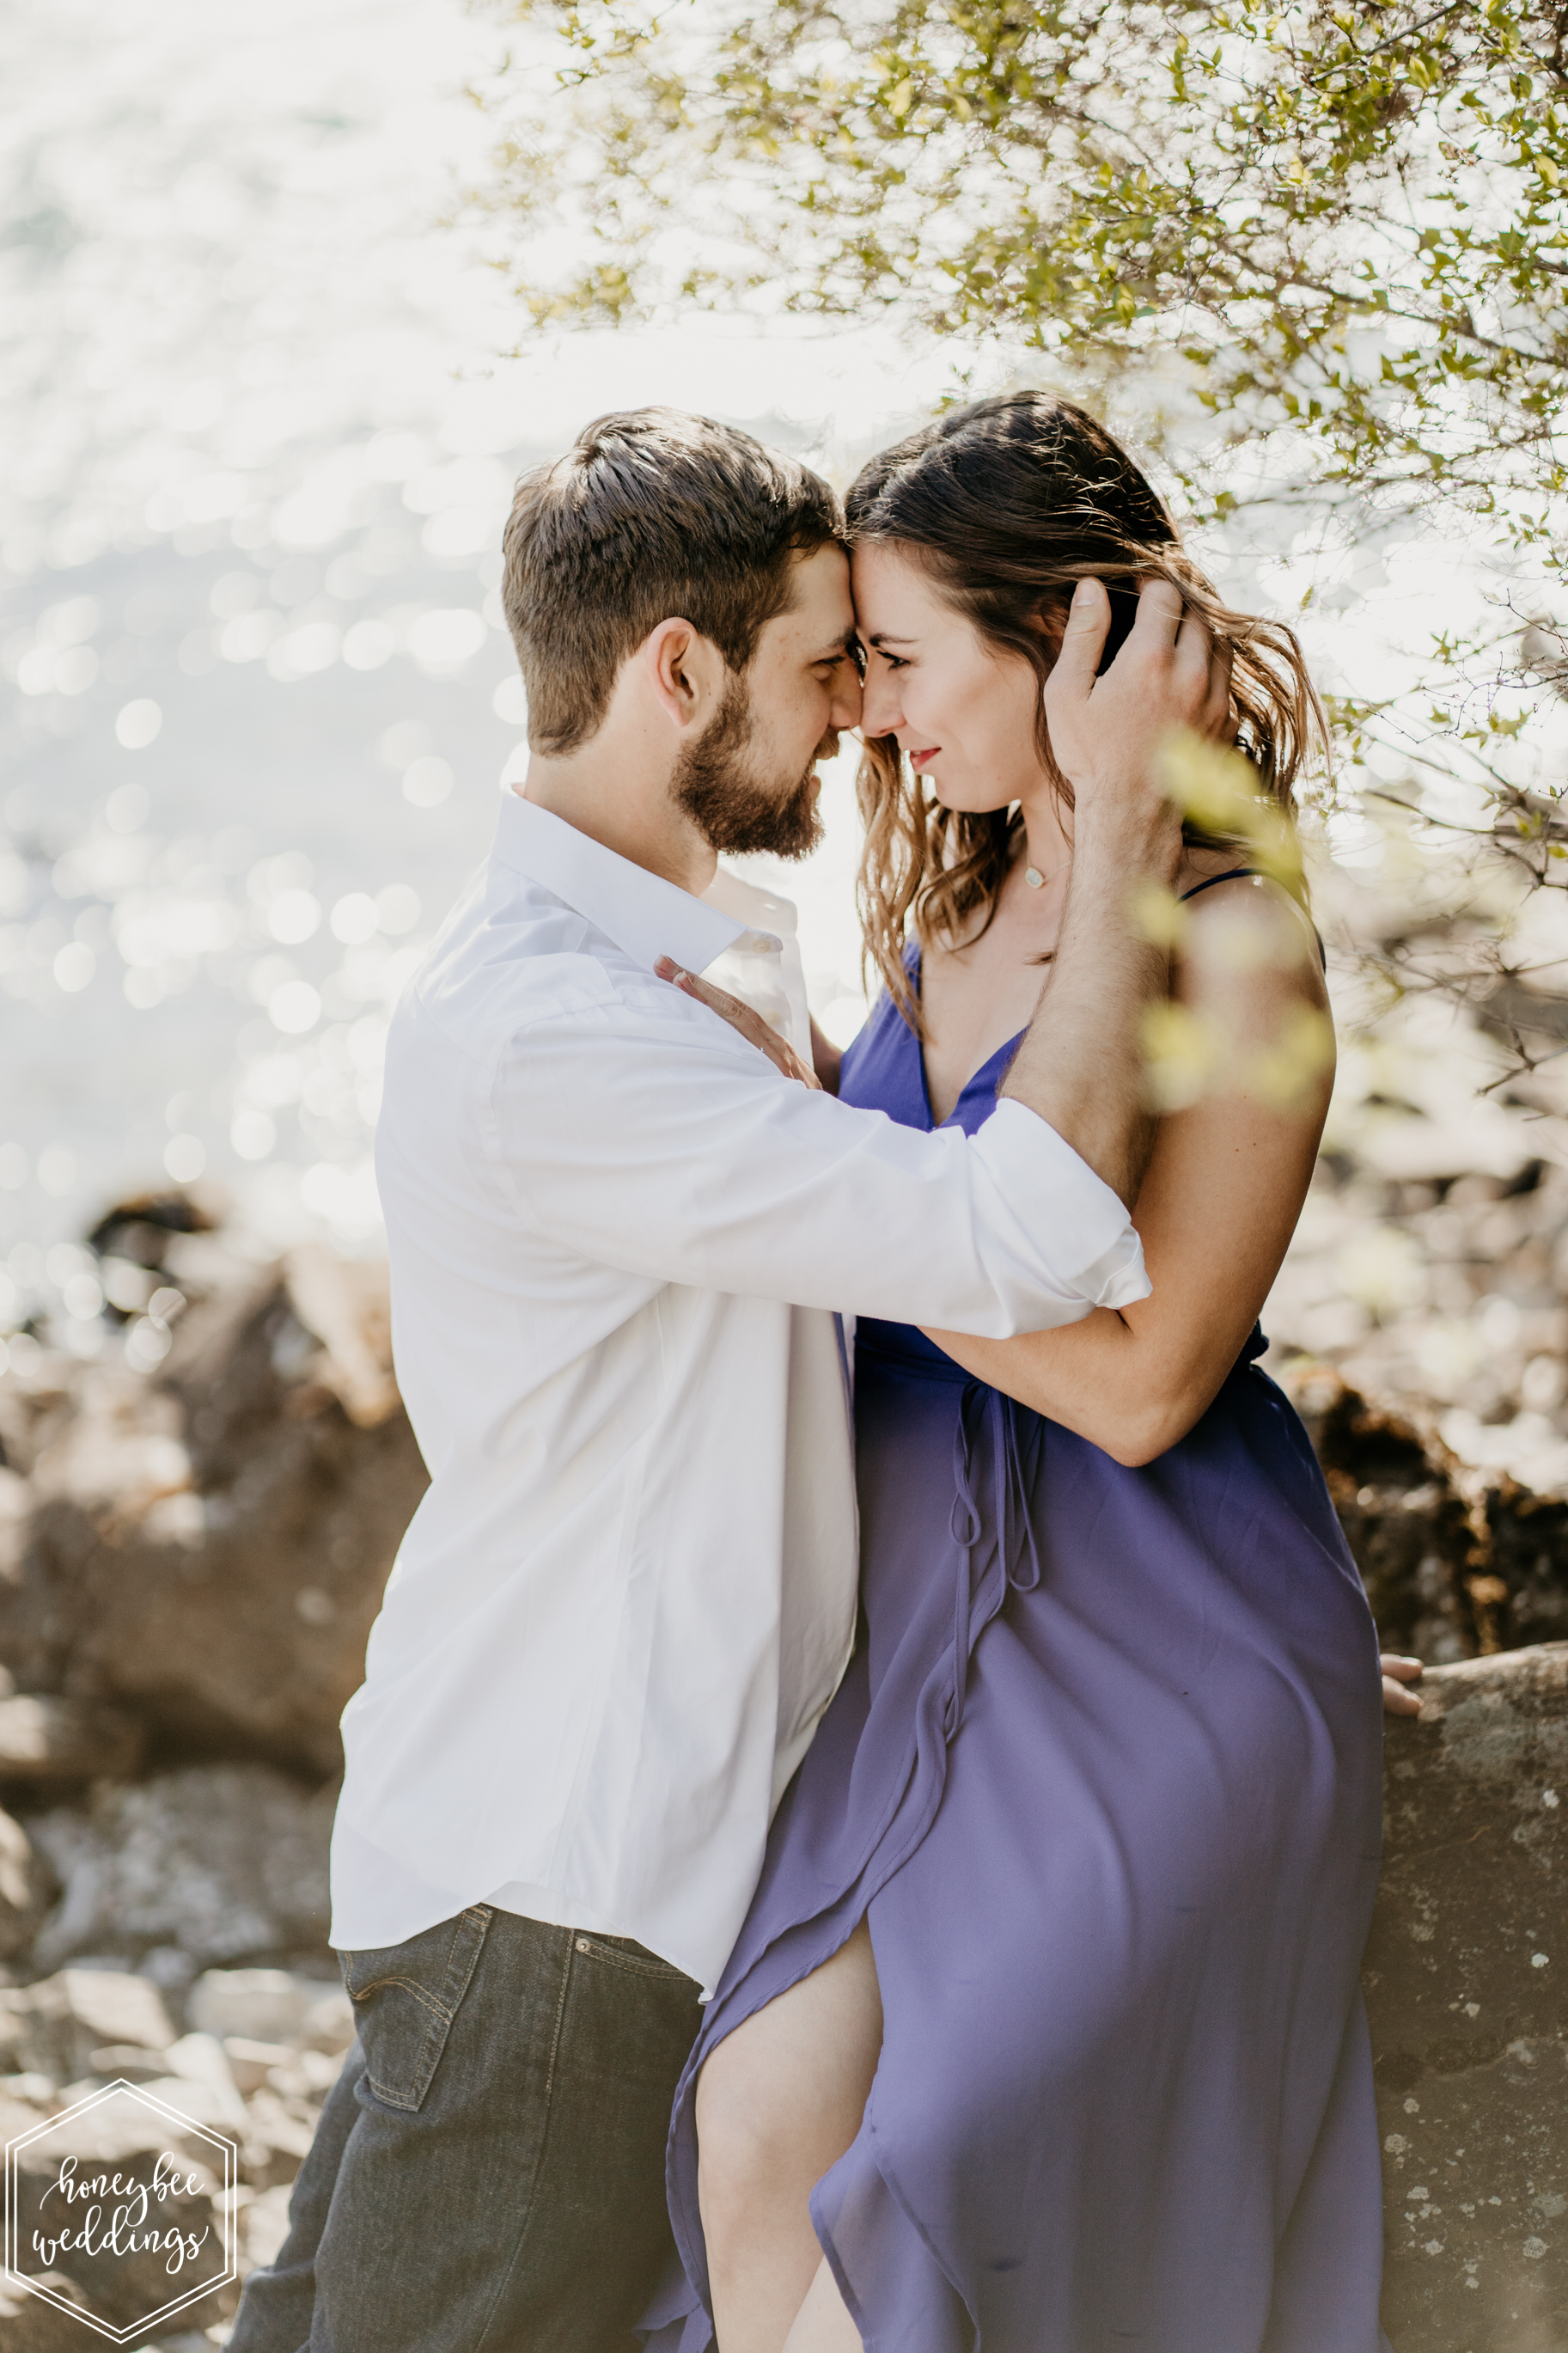 042Montana Wedding Photographer_Polson Engagement Session_Carrie & Matt_Honeybee Weddings_May 11, 2019-113.jpg